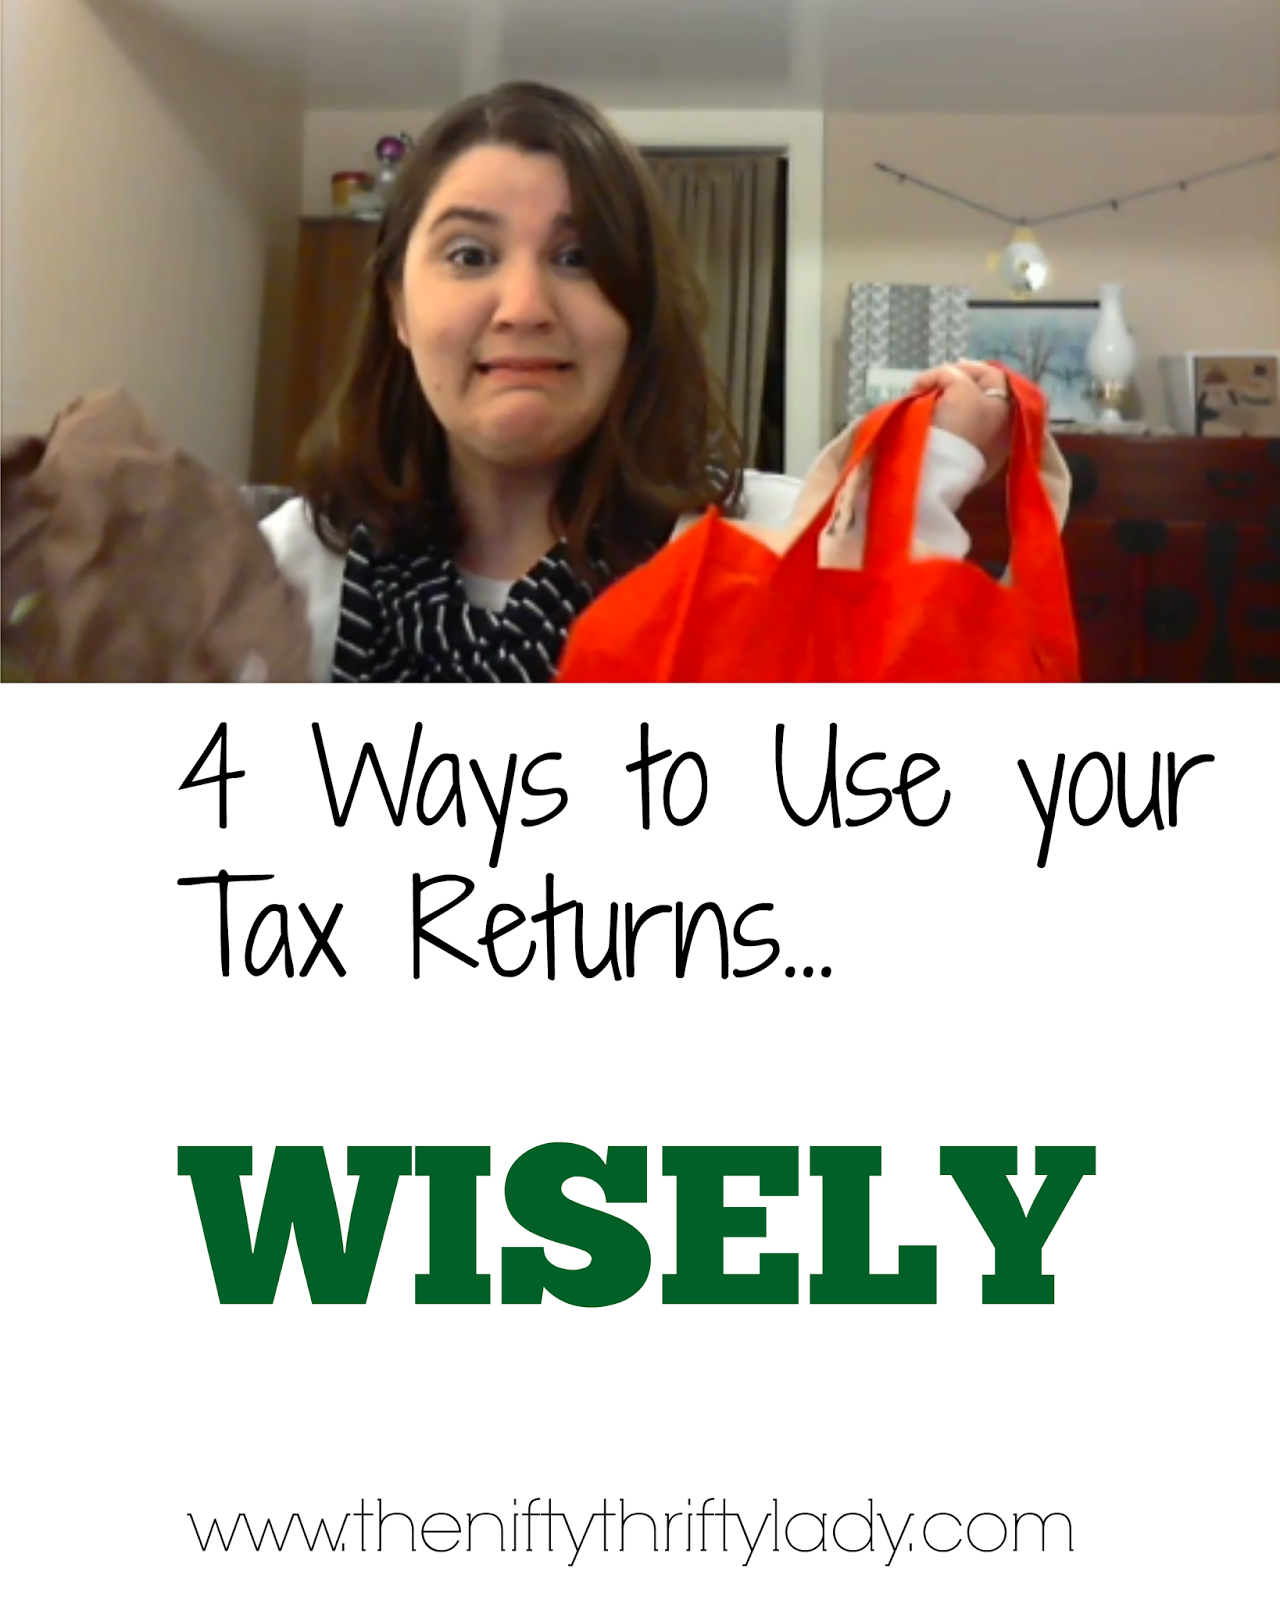 How to spend tax returns wisely